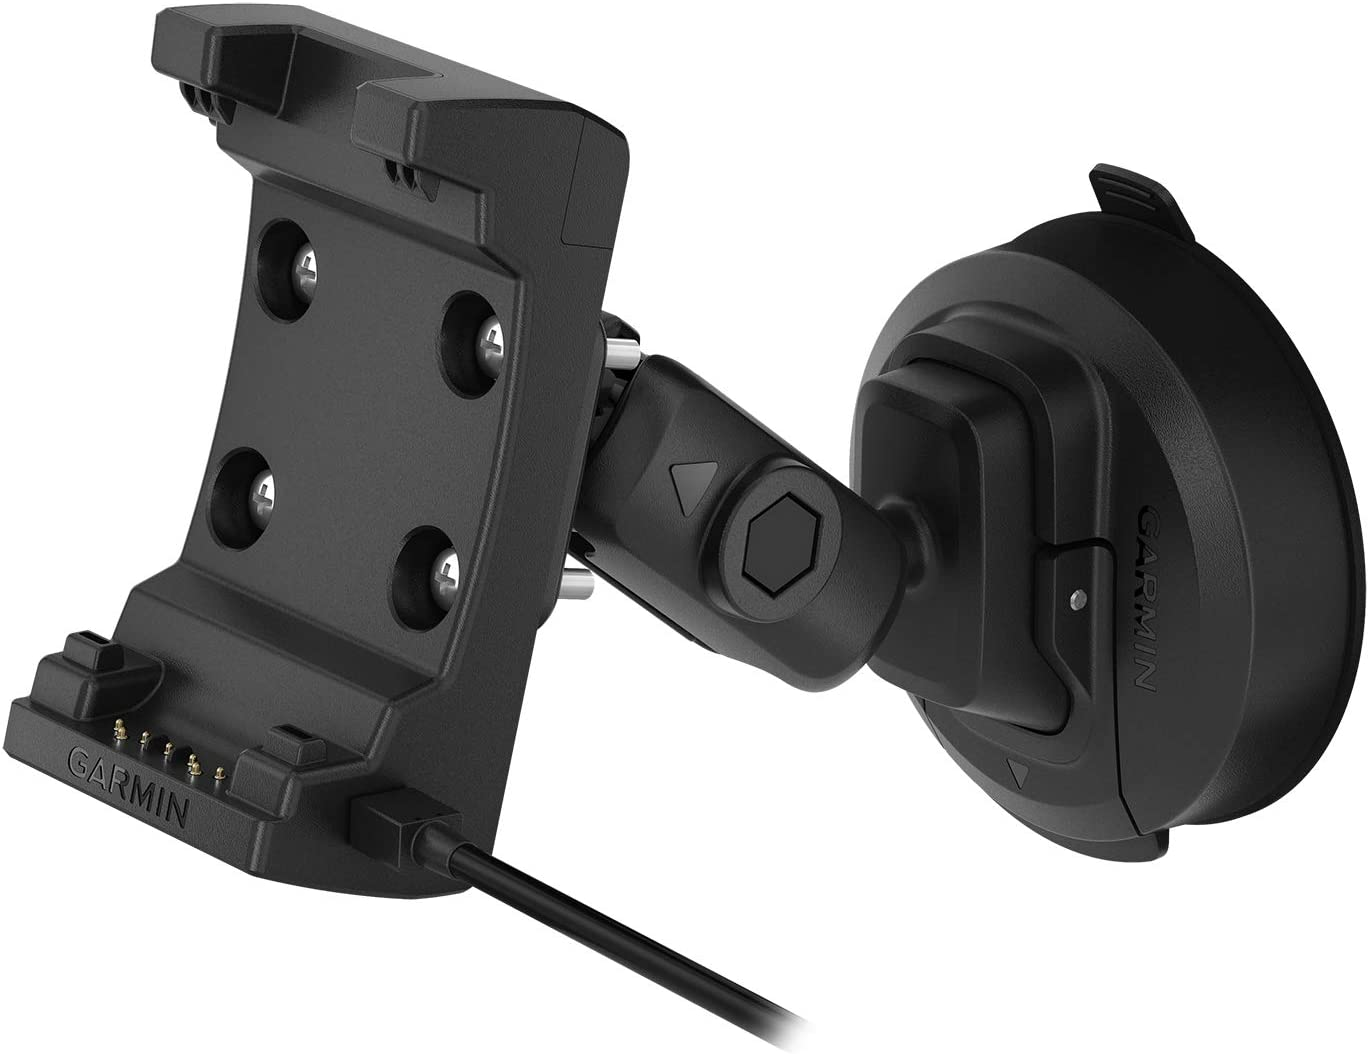 New product!! Garmin Montana 700 Free shipping anywhere in the nation Series Suction Mount Speaker 010-128 Cup with